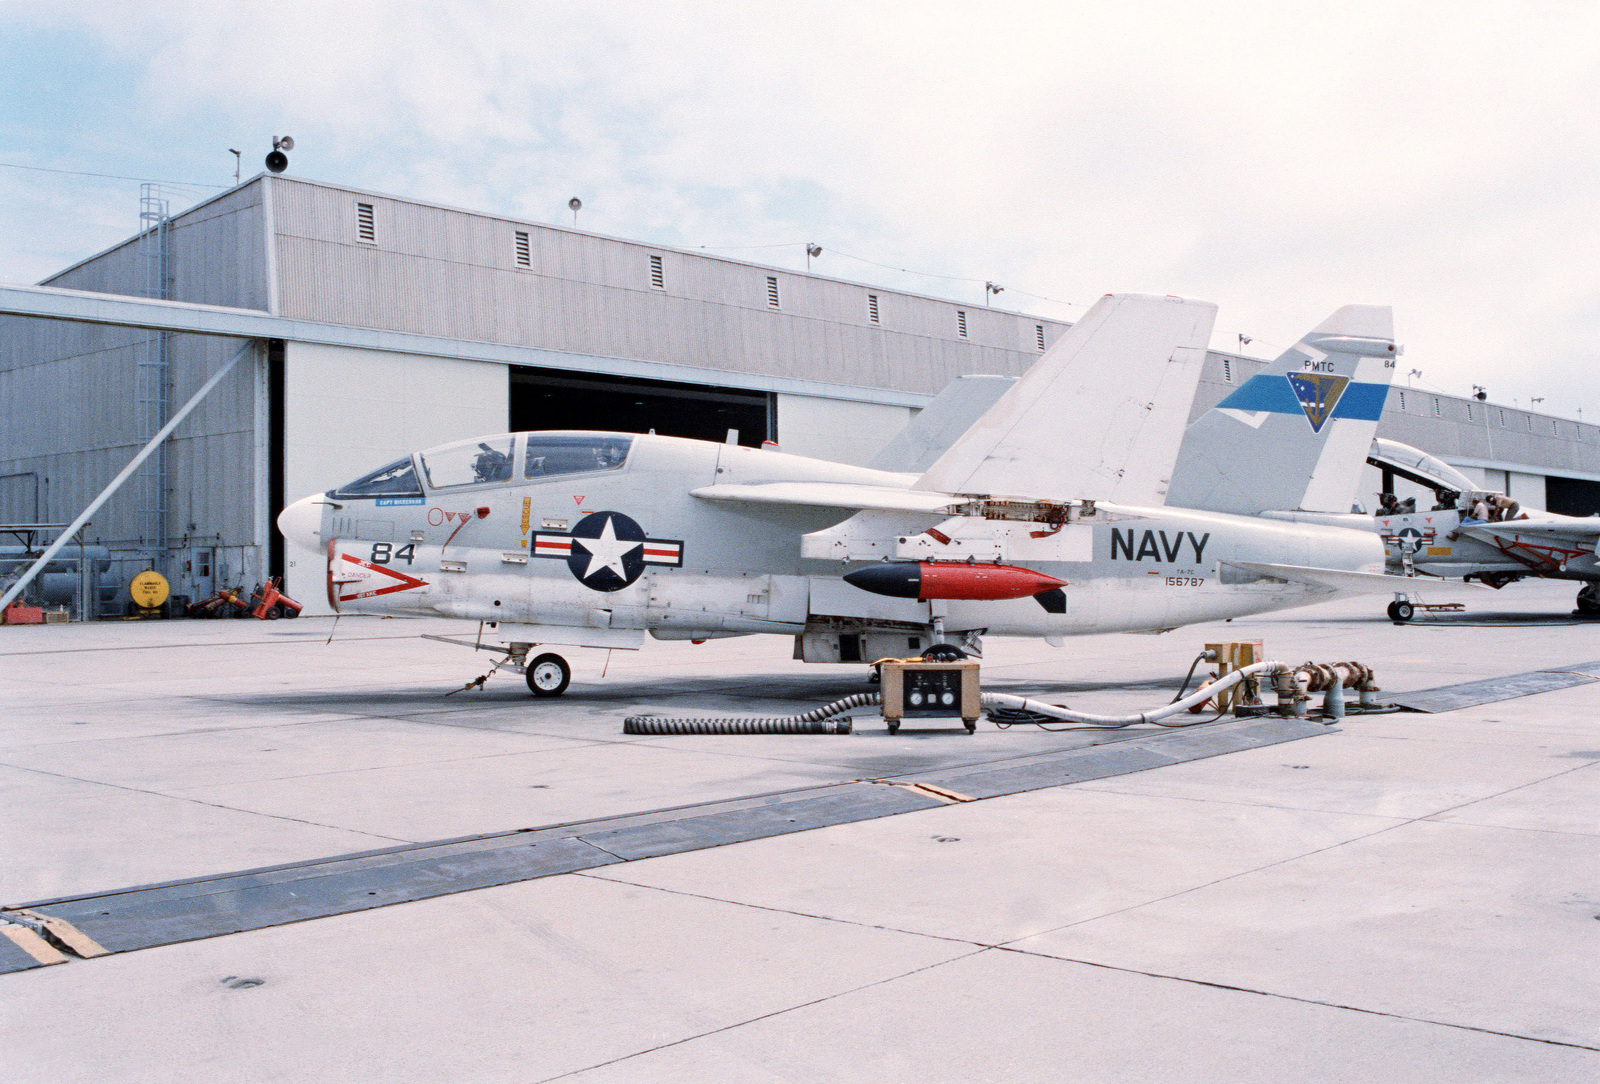 A view of an A-7 Corsair II aircraft fitted with a Radar Simulating Set (RSS)-(JEEP) pod, parked in front of Building 351 at the Pacific Missile Test Center